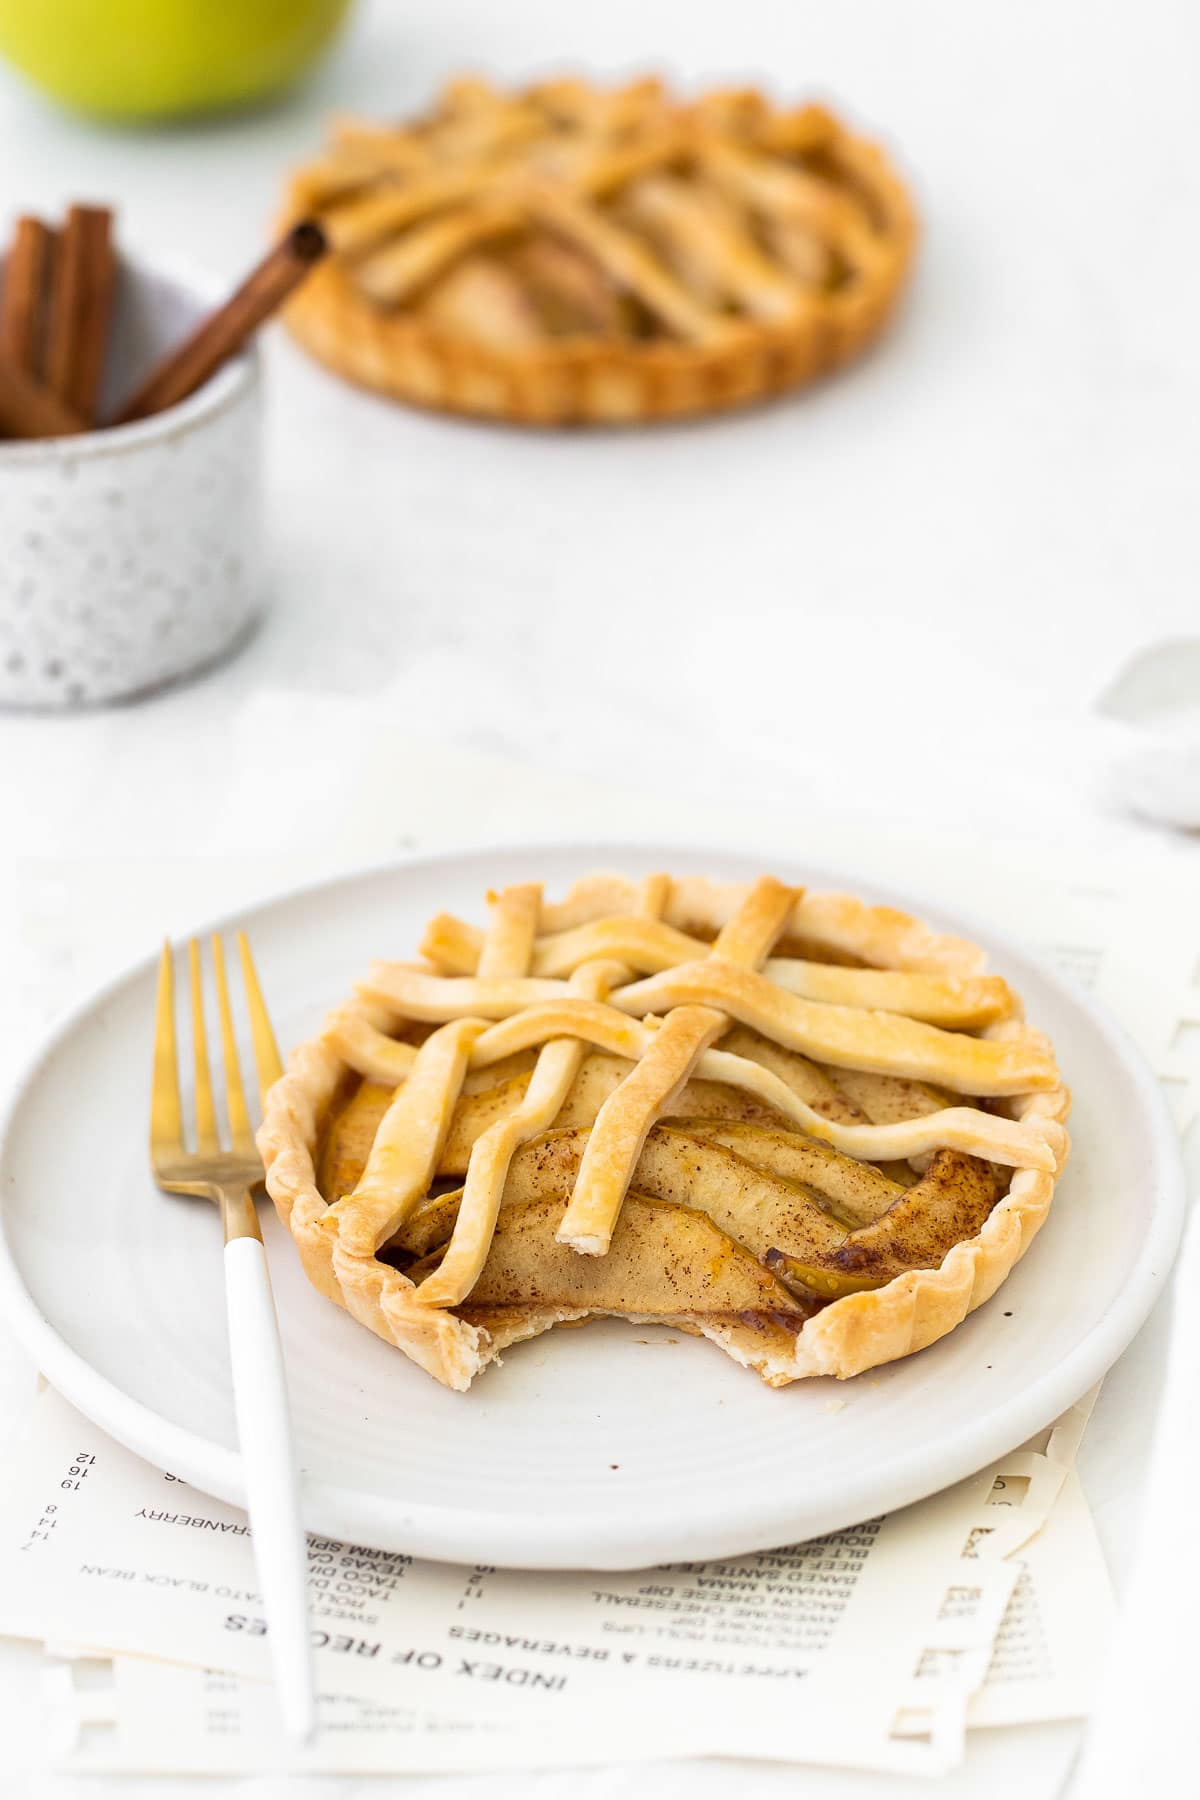 apple tart and a white and gold fork on a white round plate with a bite taken out.